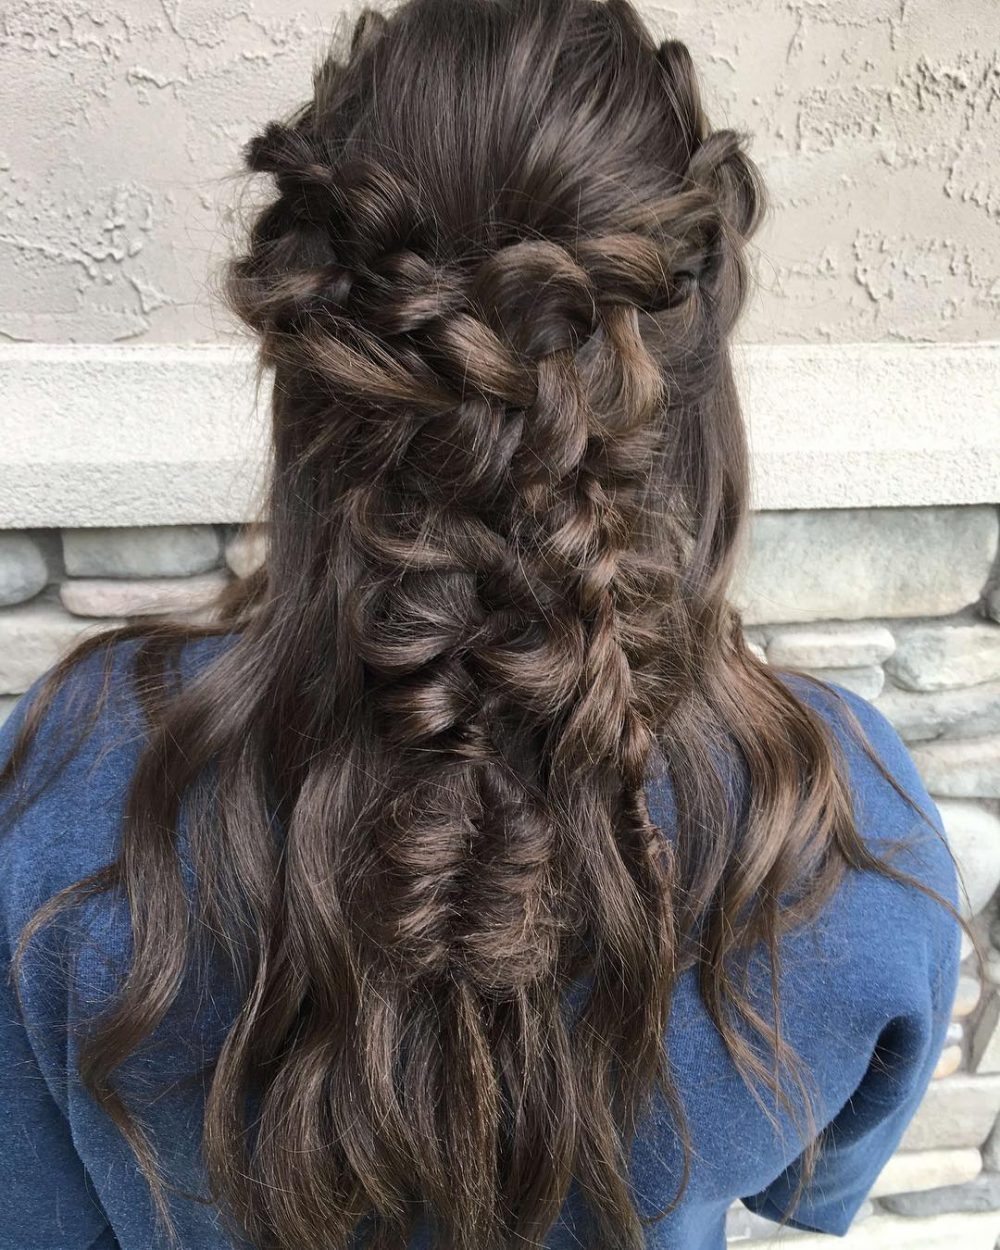 29 Prom Hairstyles For Long Hair That Are Gorgeous In 2019